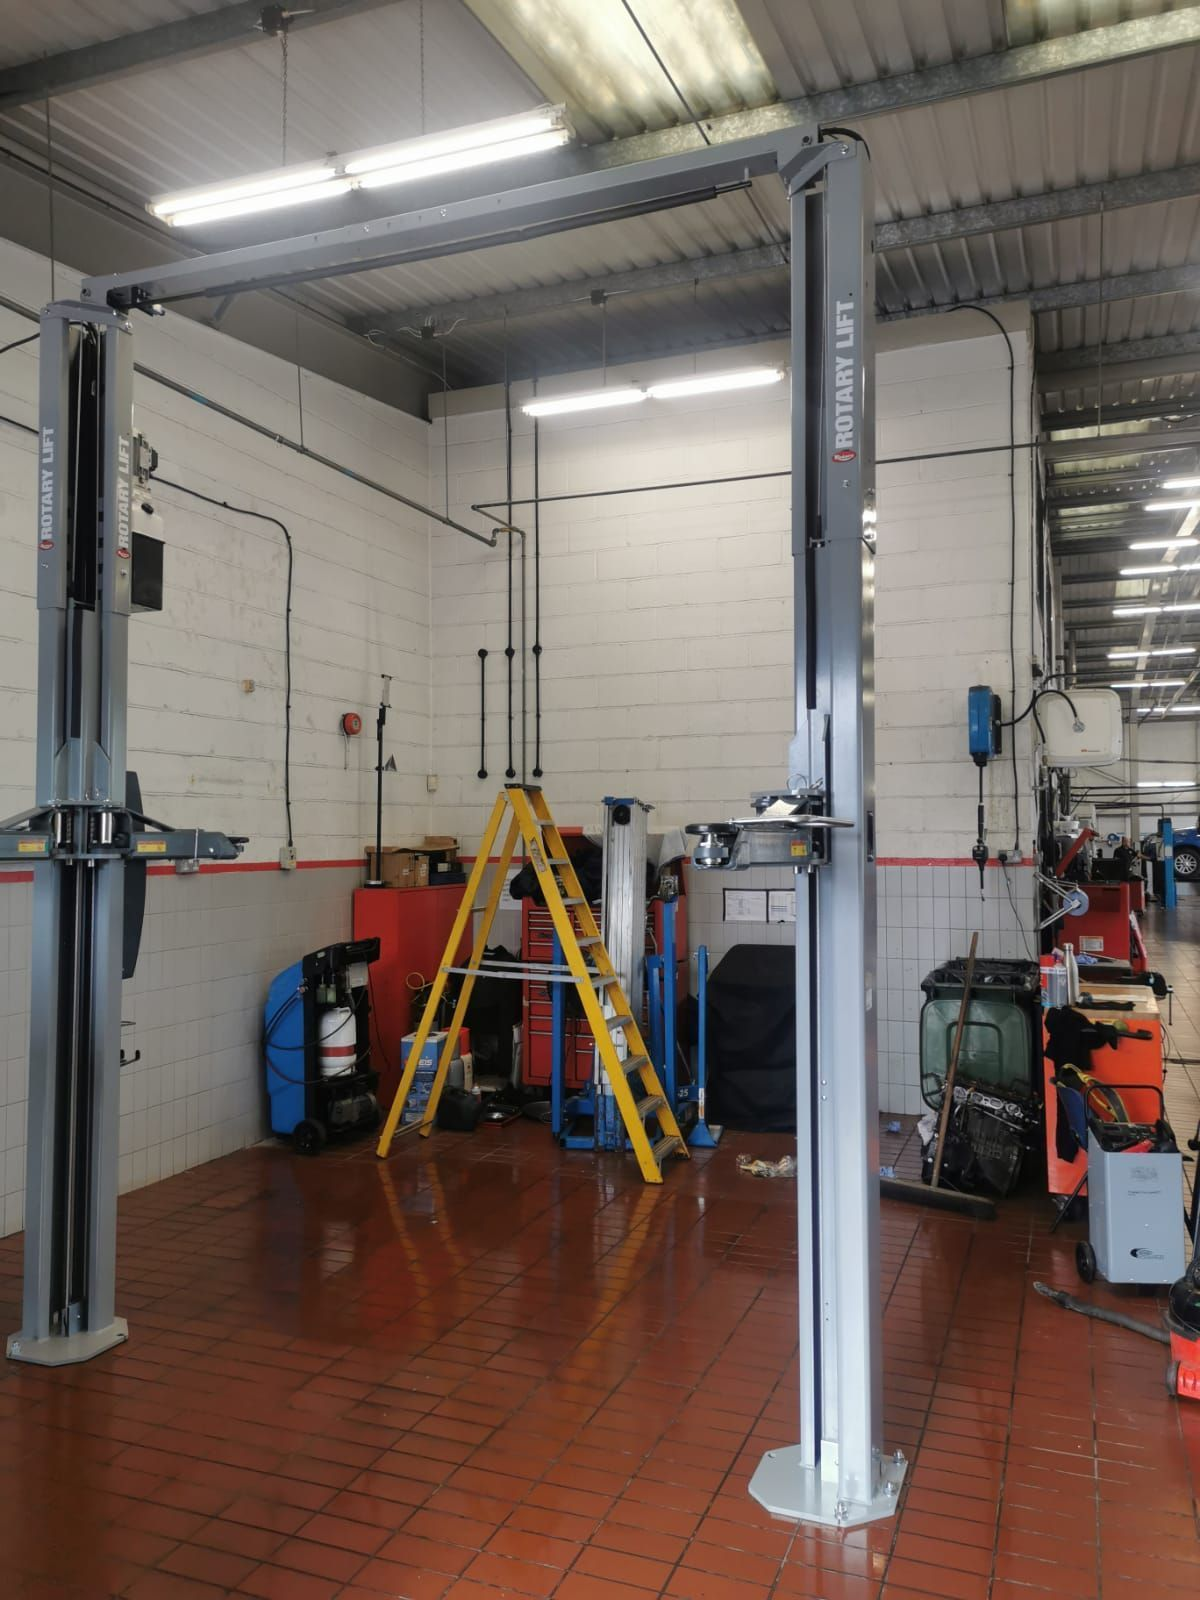 Install after install, we prove we are number one for equipment - we have experts for Rotary Lifts so you don't need to worry!